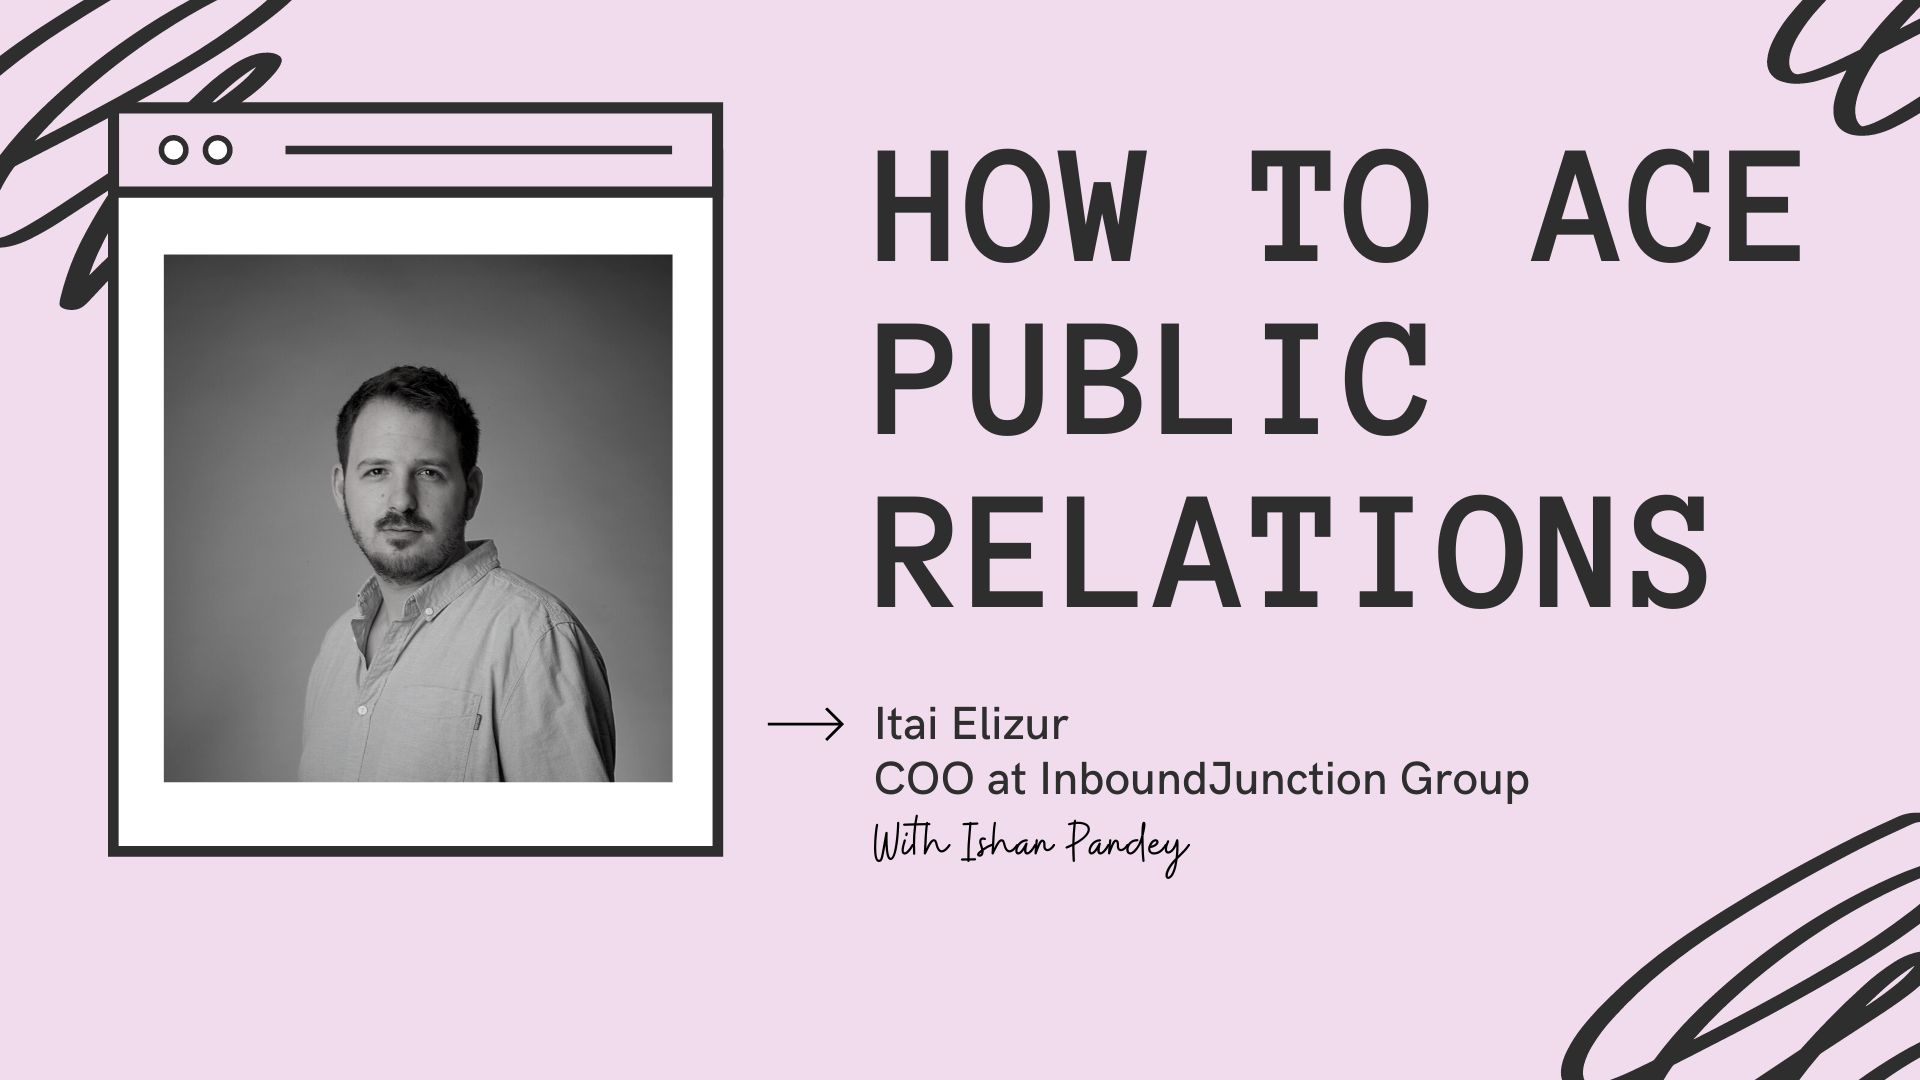 /how-to-ace-public-relations-with-itai-elizur-lk93wei feature image